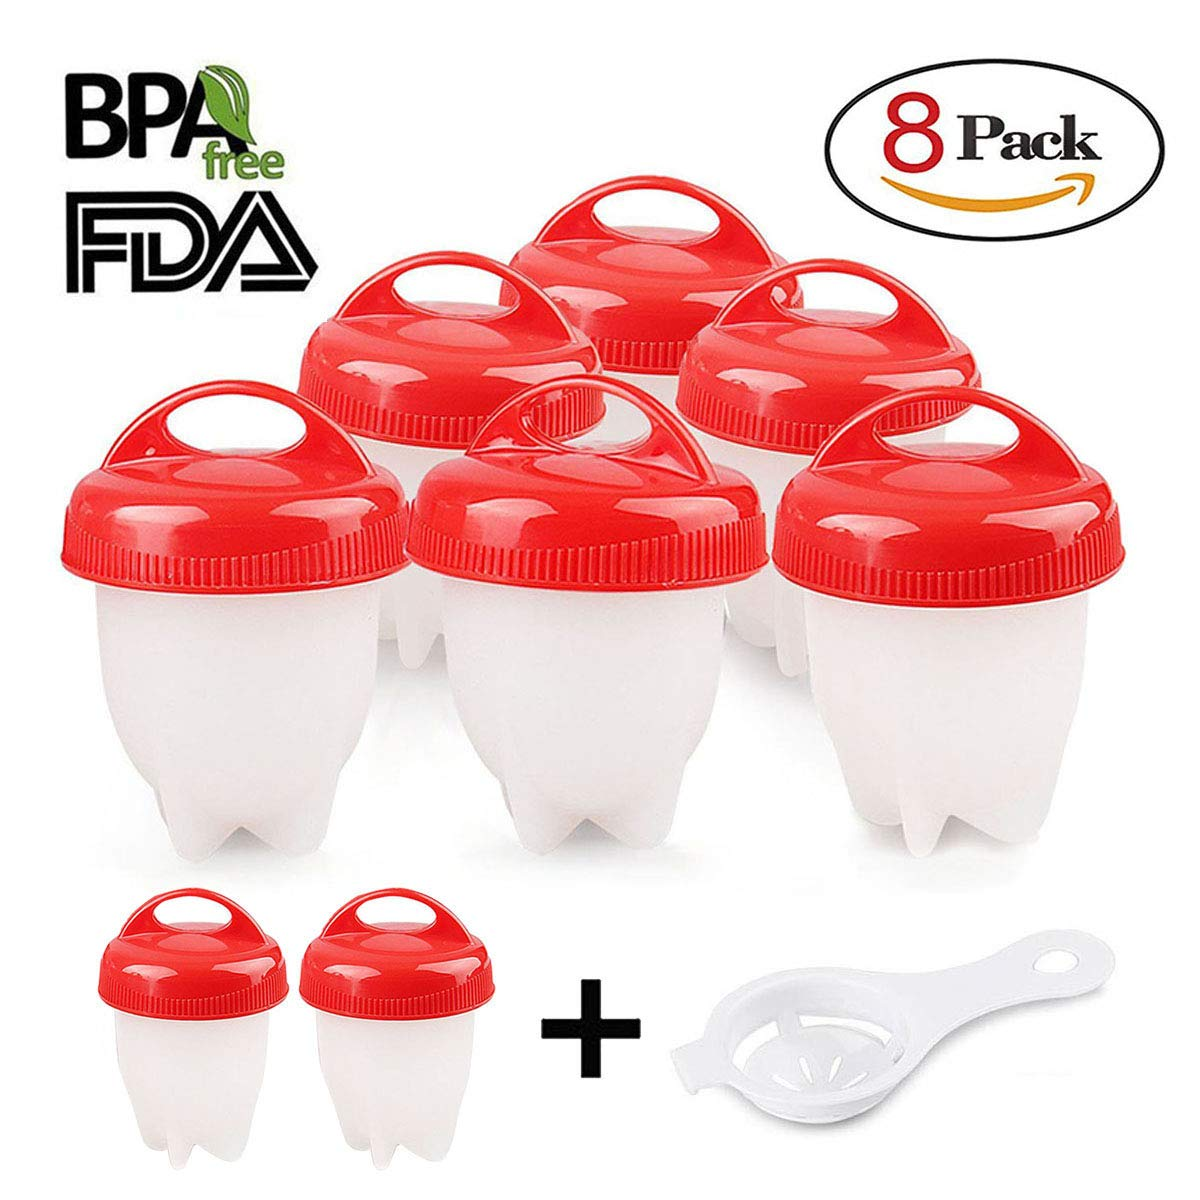 Egg Cooker 8 Pack Egg Poachers Egg Boiler - Hard Boiled Eggs without the Shell, BPA Free, Non Stick Silicone Egg Cups, AS SEEN ON TV, by MOOKZZ L-EGG+FDQ